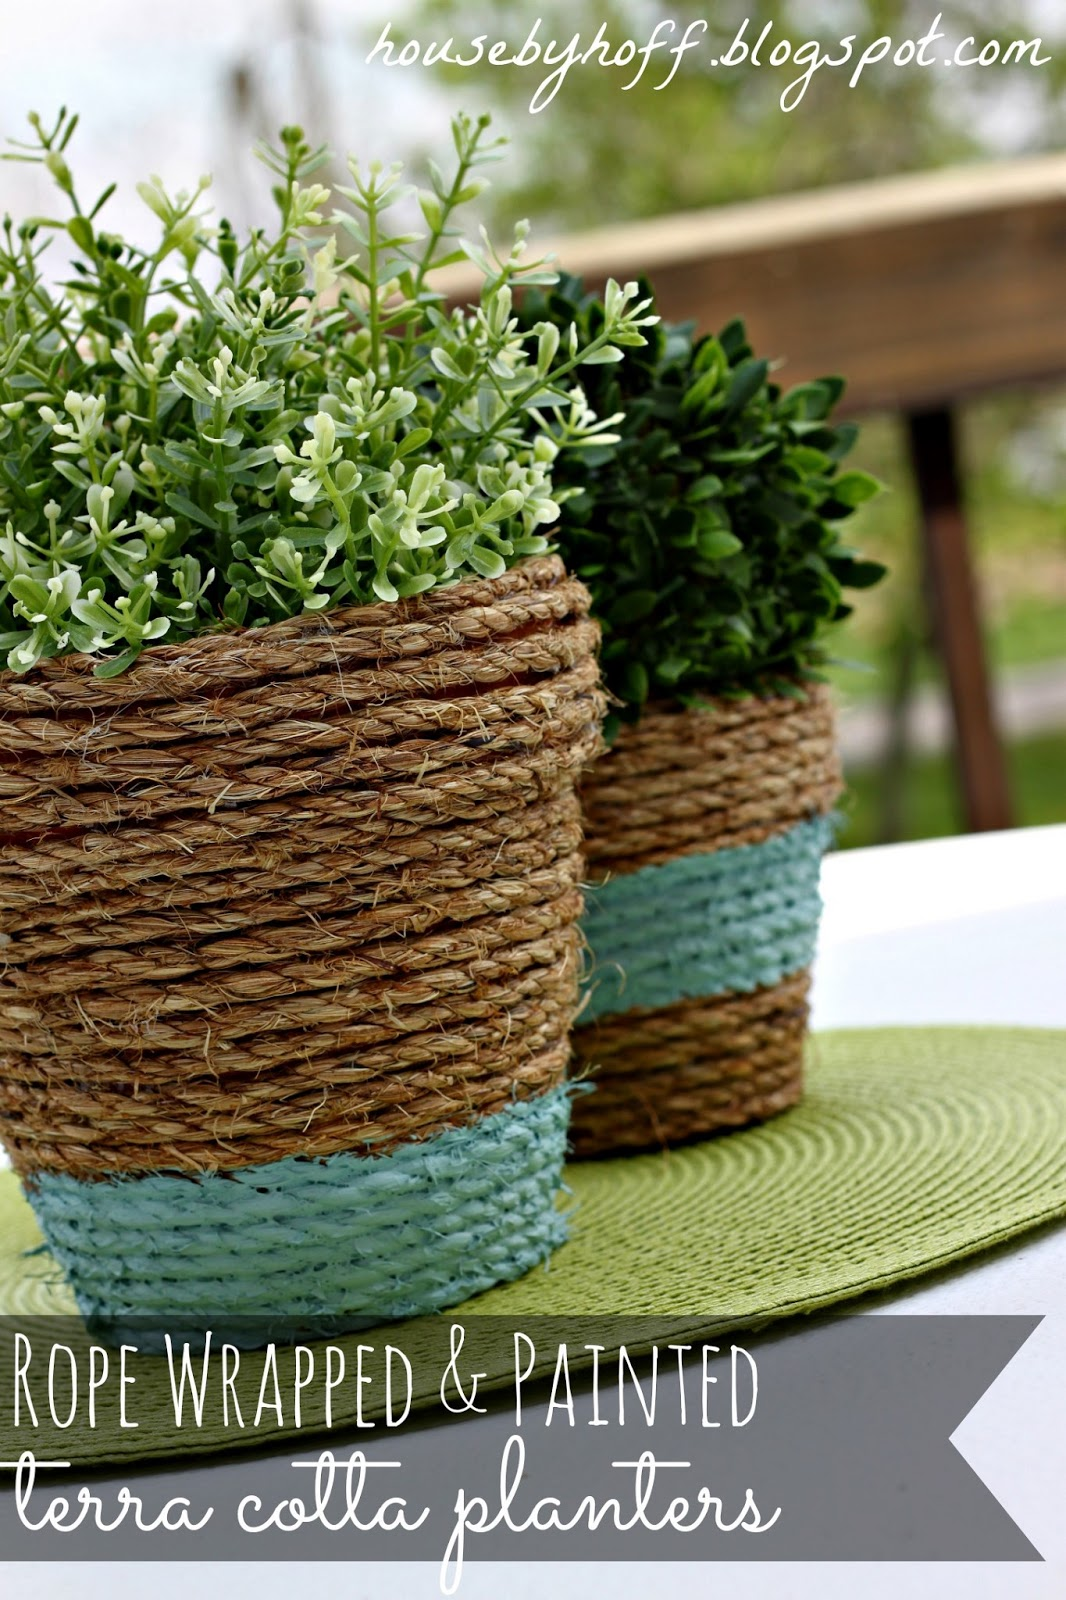 how to make rope wrapped pots via housebyhoff.com & Rope-Wrapped Pots - House by Hoff